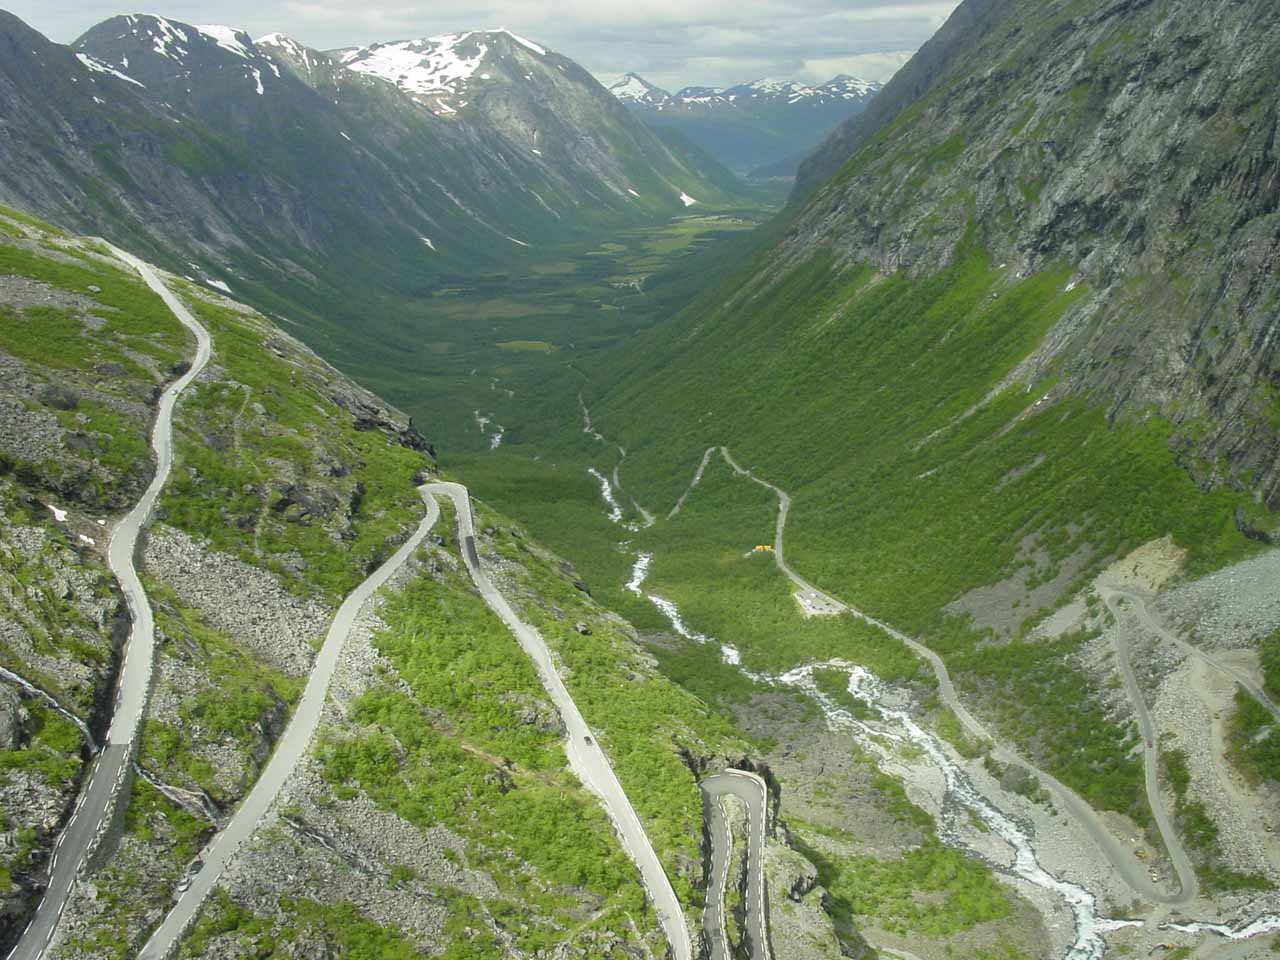 This was the classic view of Trollstigen and Isterdalen Valley from the lookout at the top